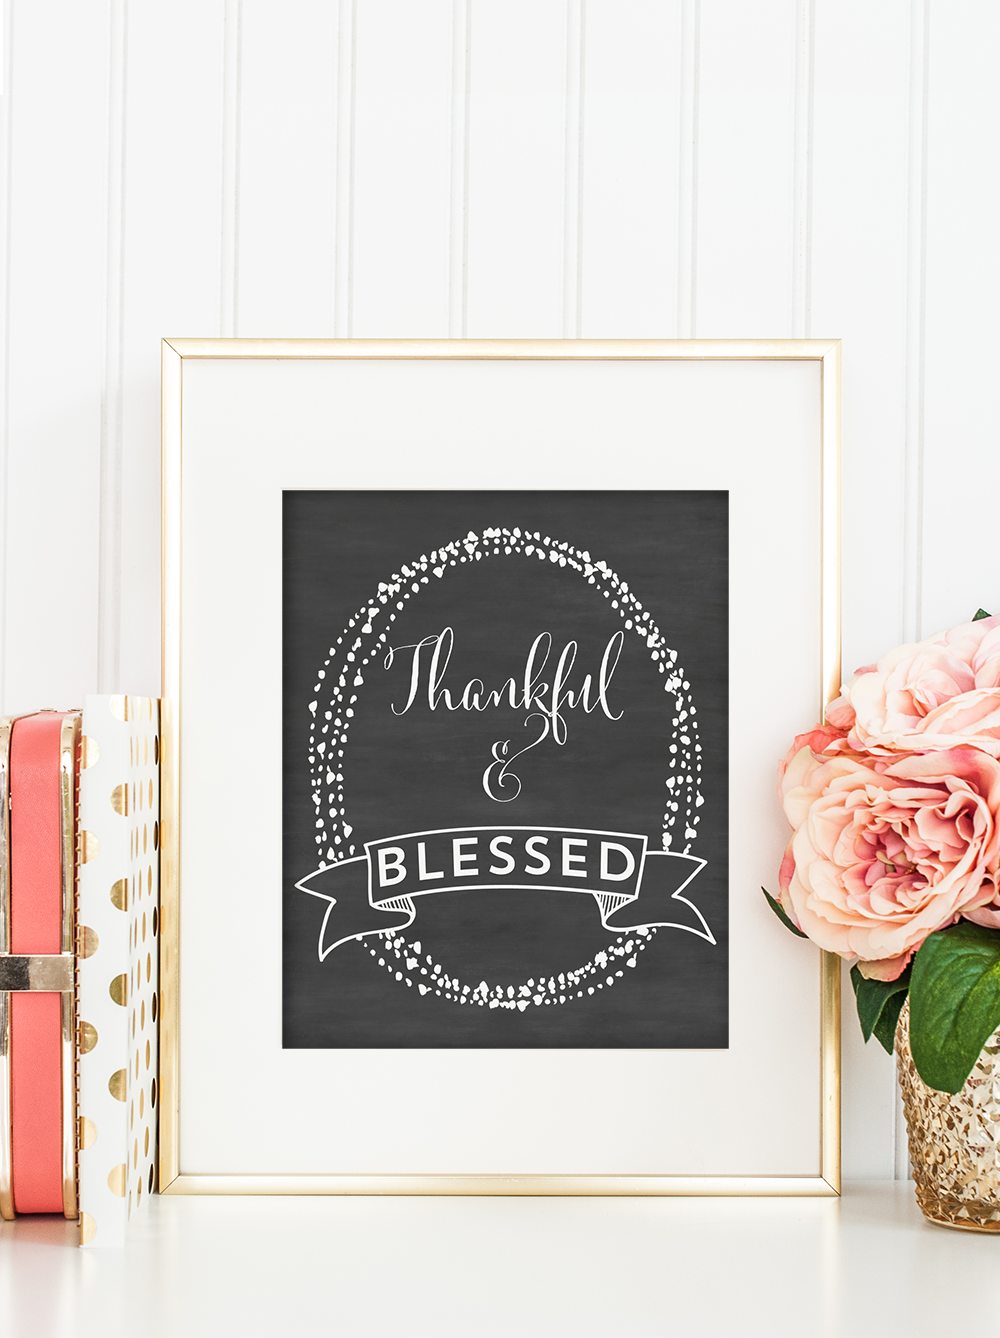 Get these wonderful Thanksgiving chalkboard printables and celebrate the season in style! 3 different printables, all 8x10 inches!